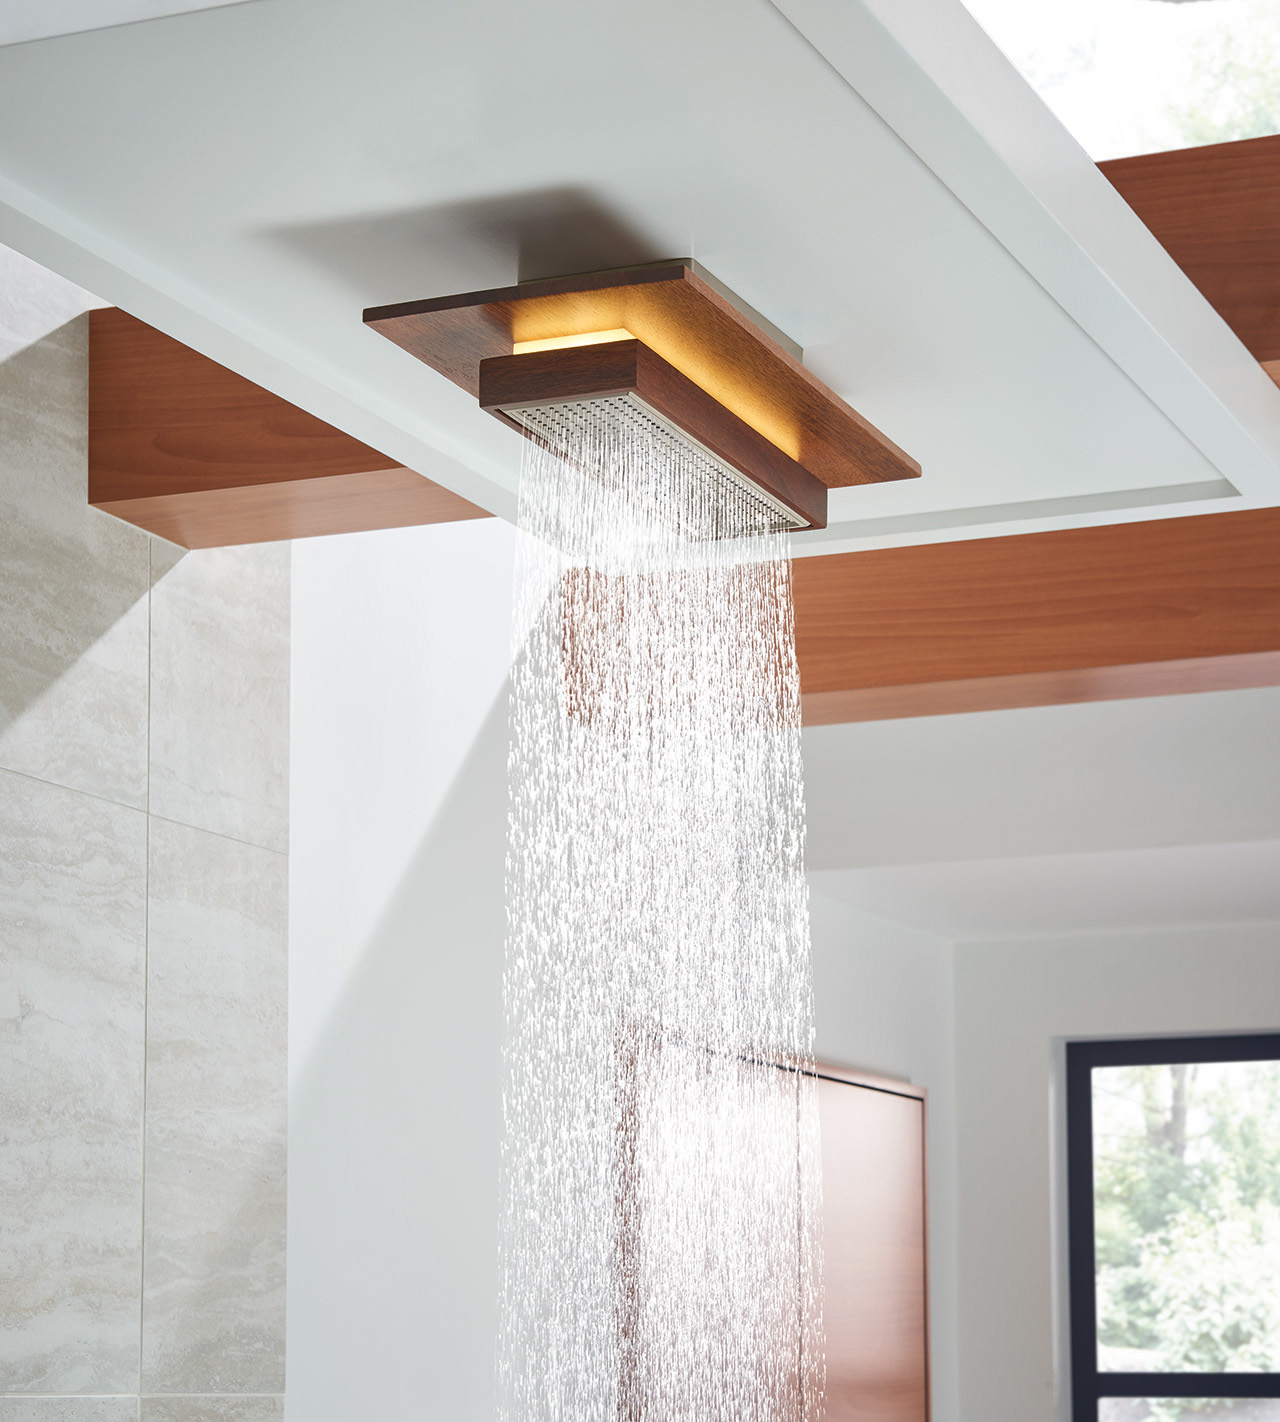 rectangular showerhead with light and water turned on